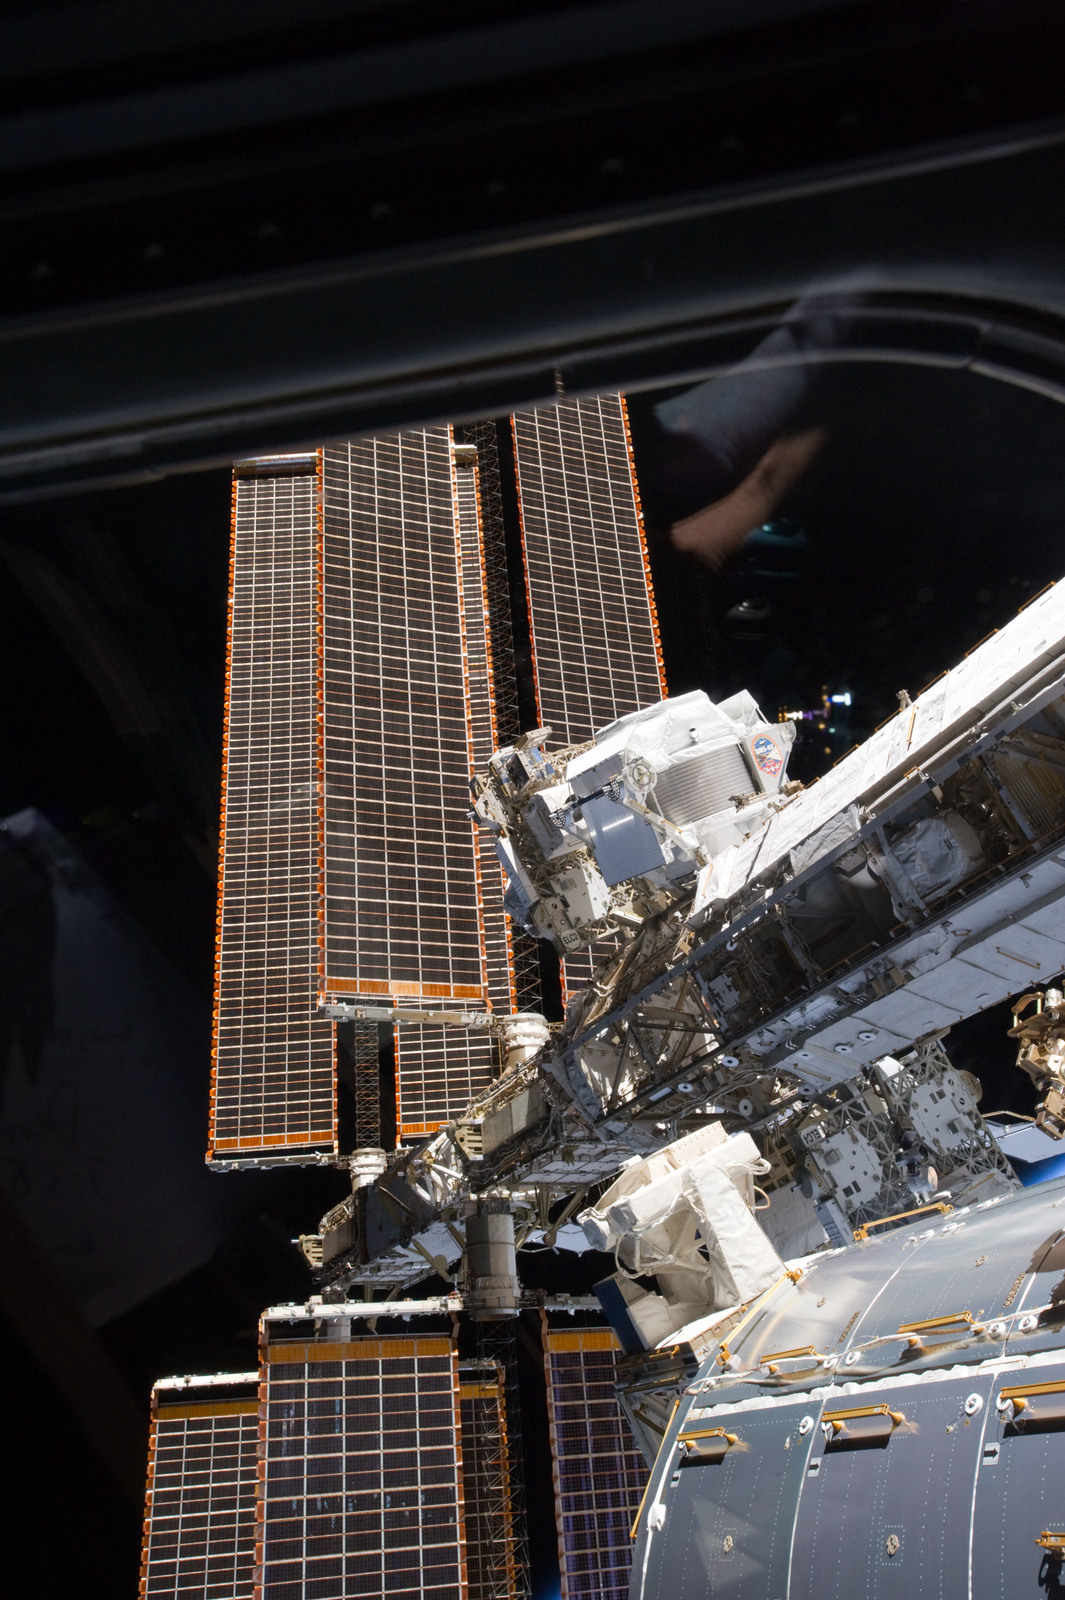 S134E007530 - STS-134 - View of the AMS-2 mounted on the S3 Truss